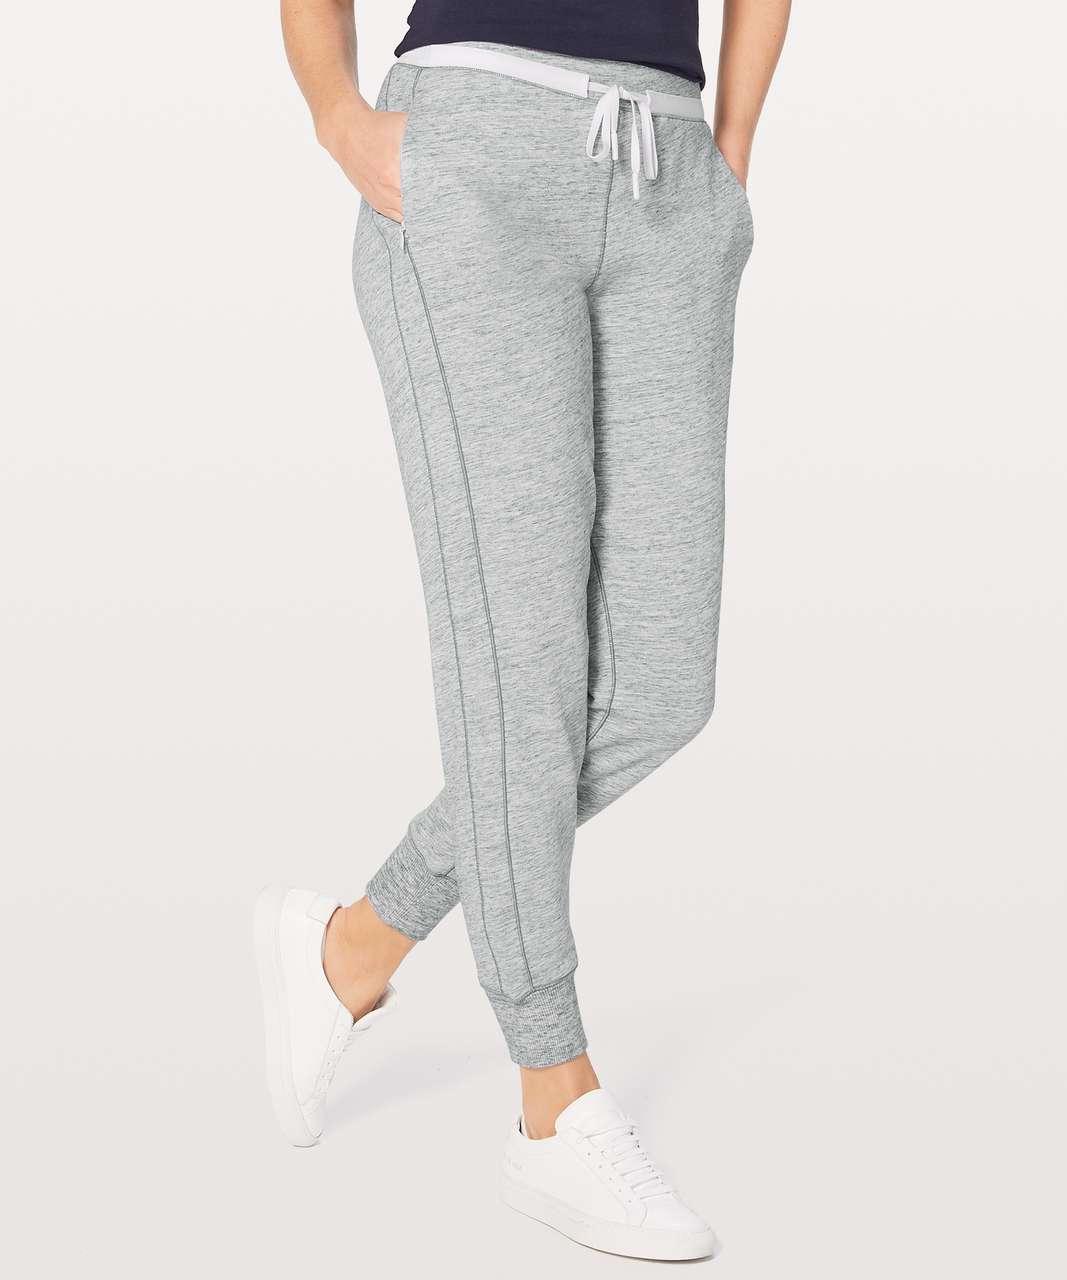 "Lululemon Cool & Collected Jogger *28"" - Heathered Space Dyed Nimbus"